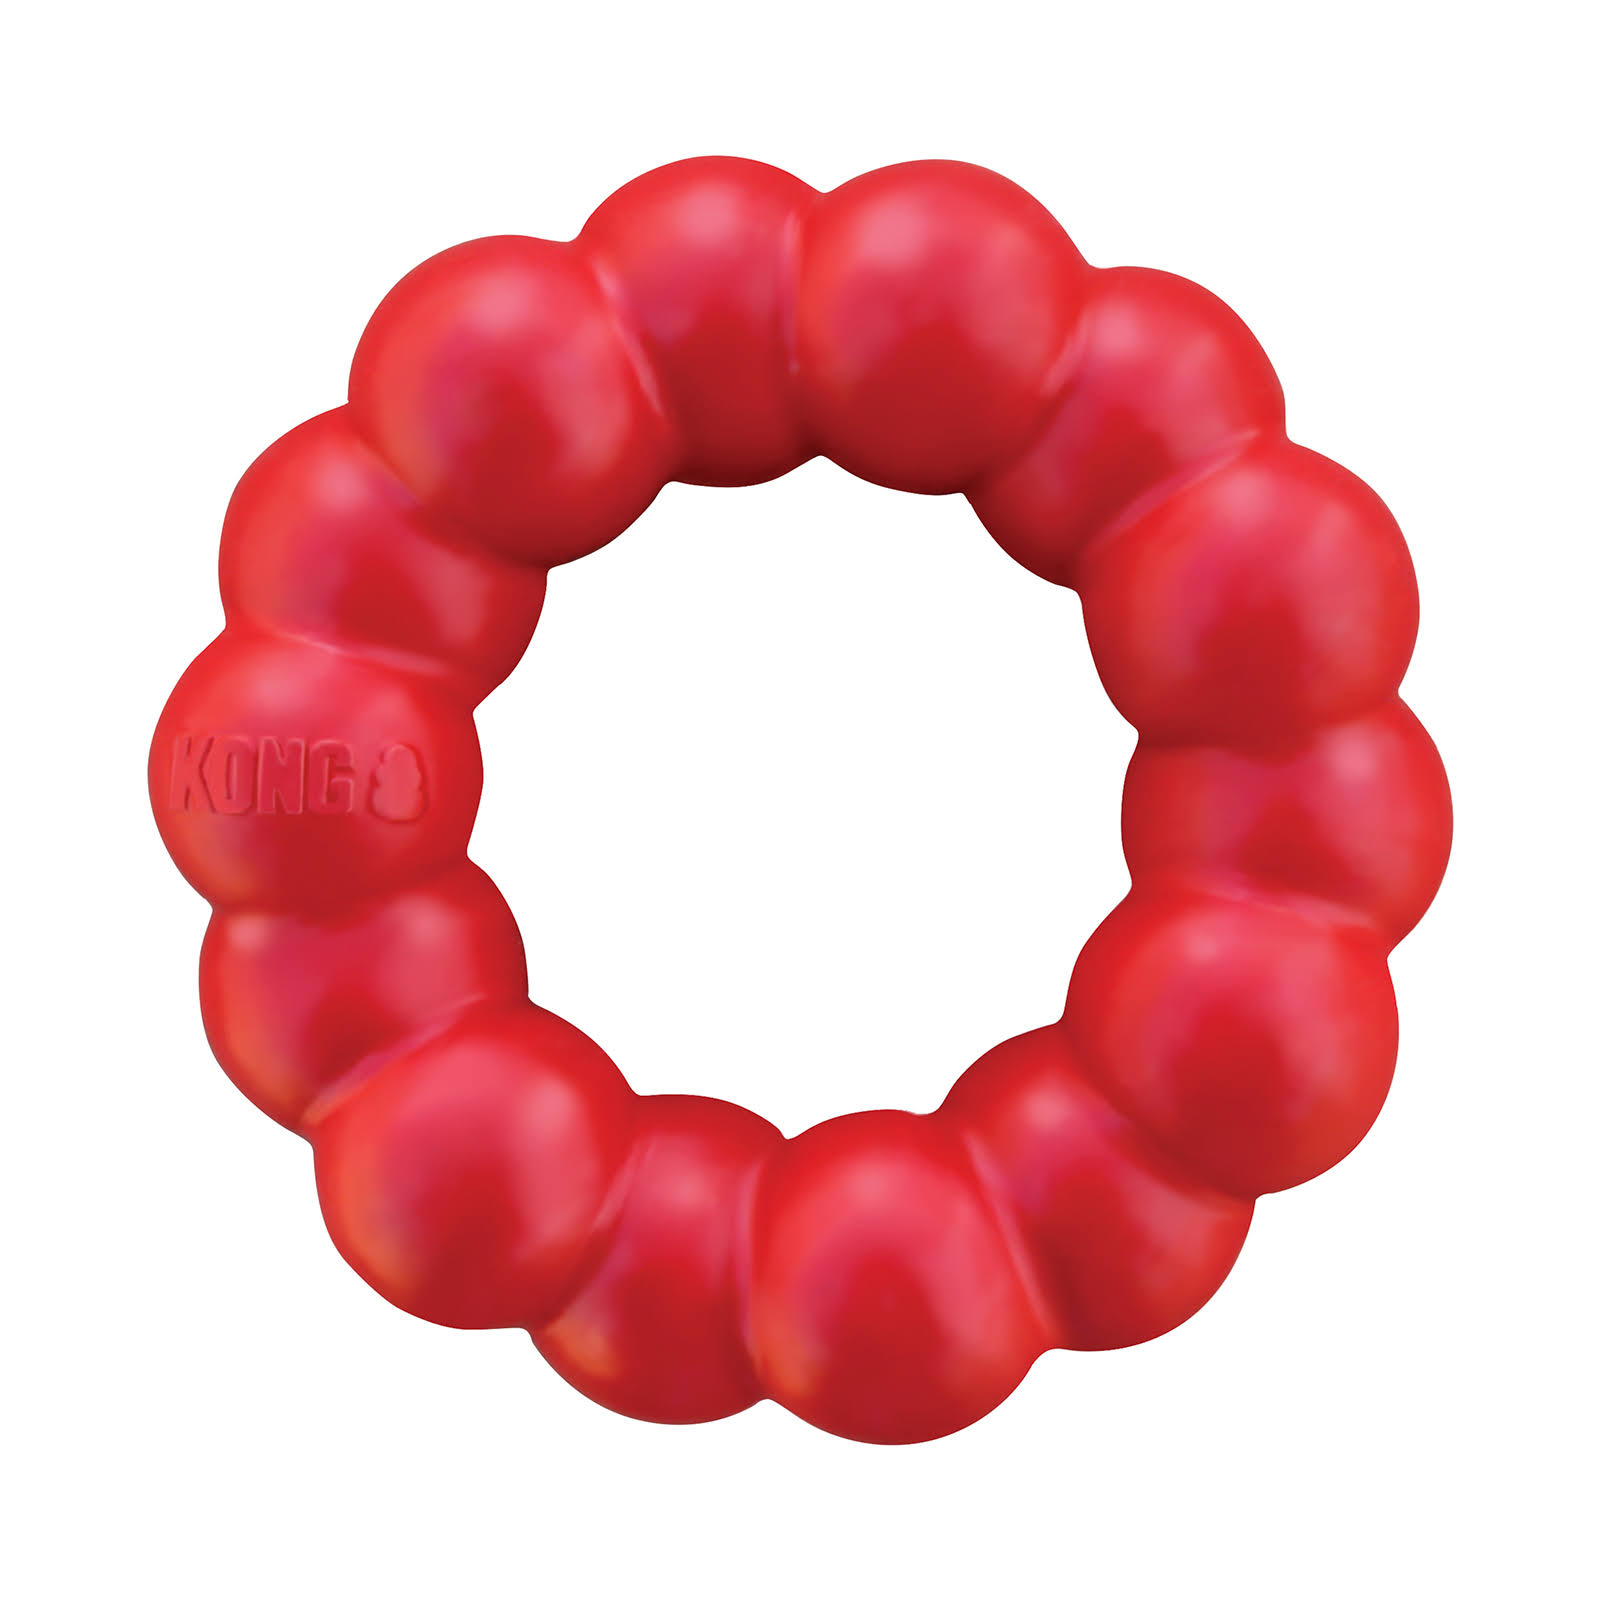 Kong - Ring - Medium/Large